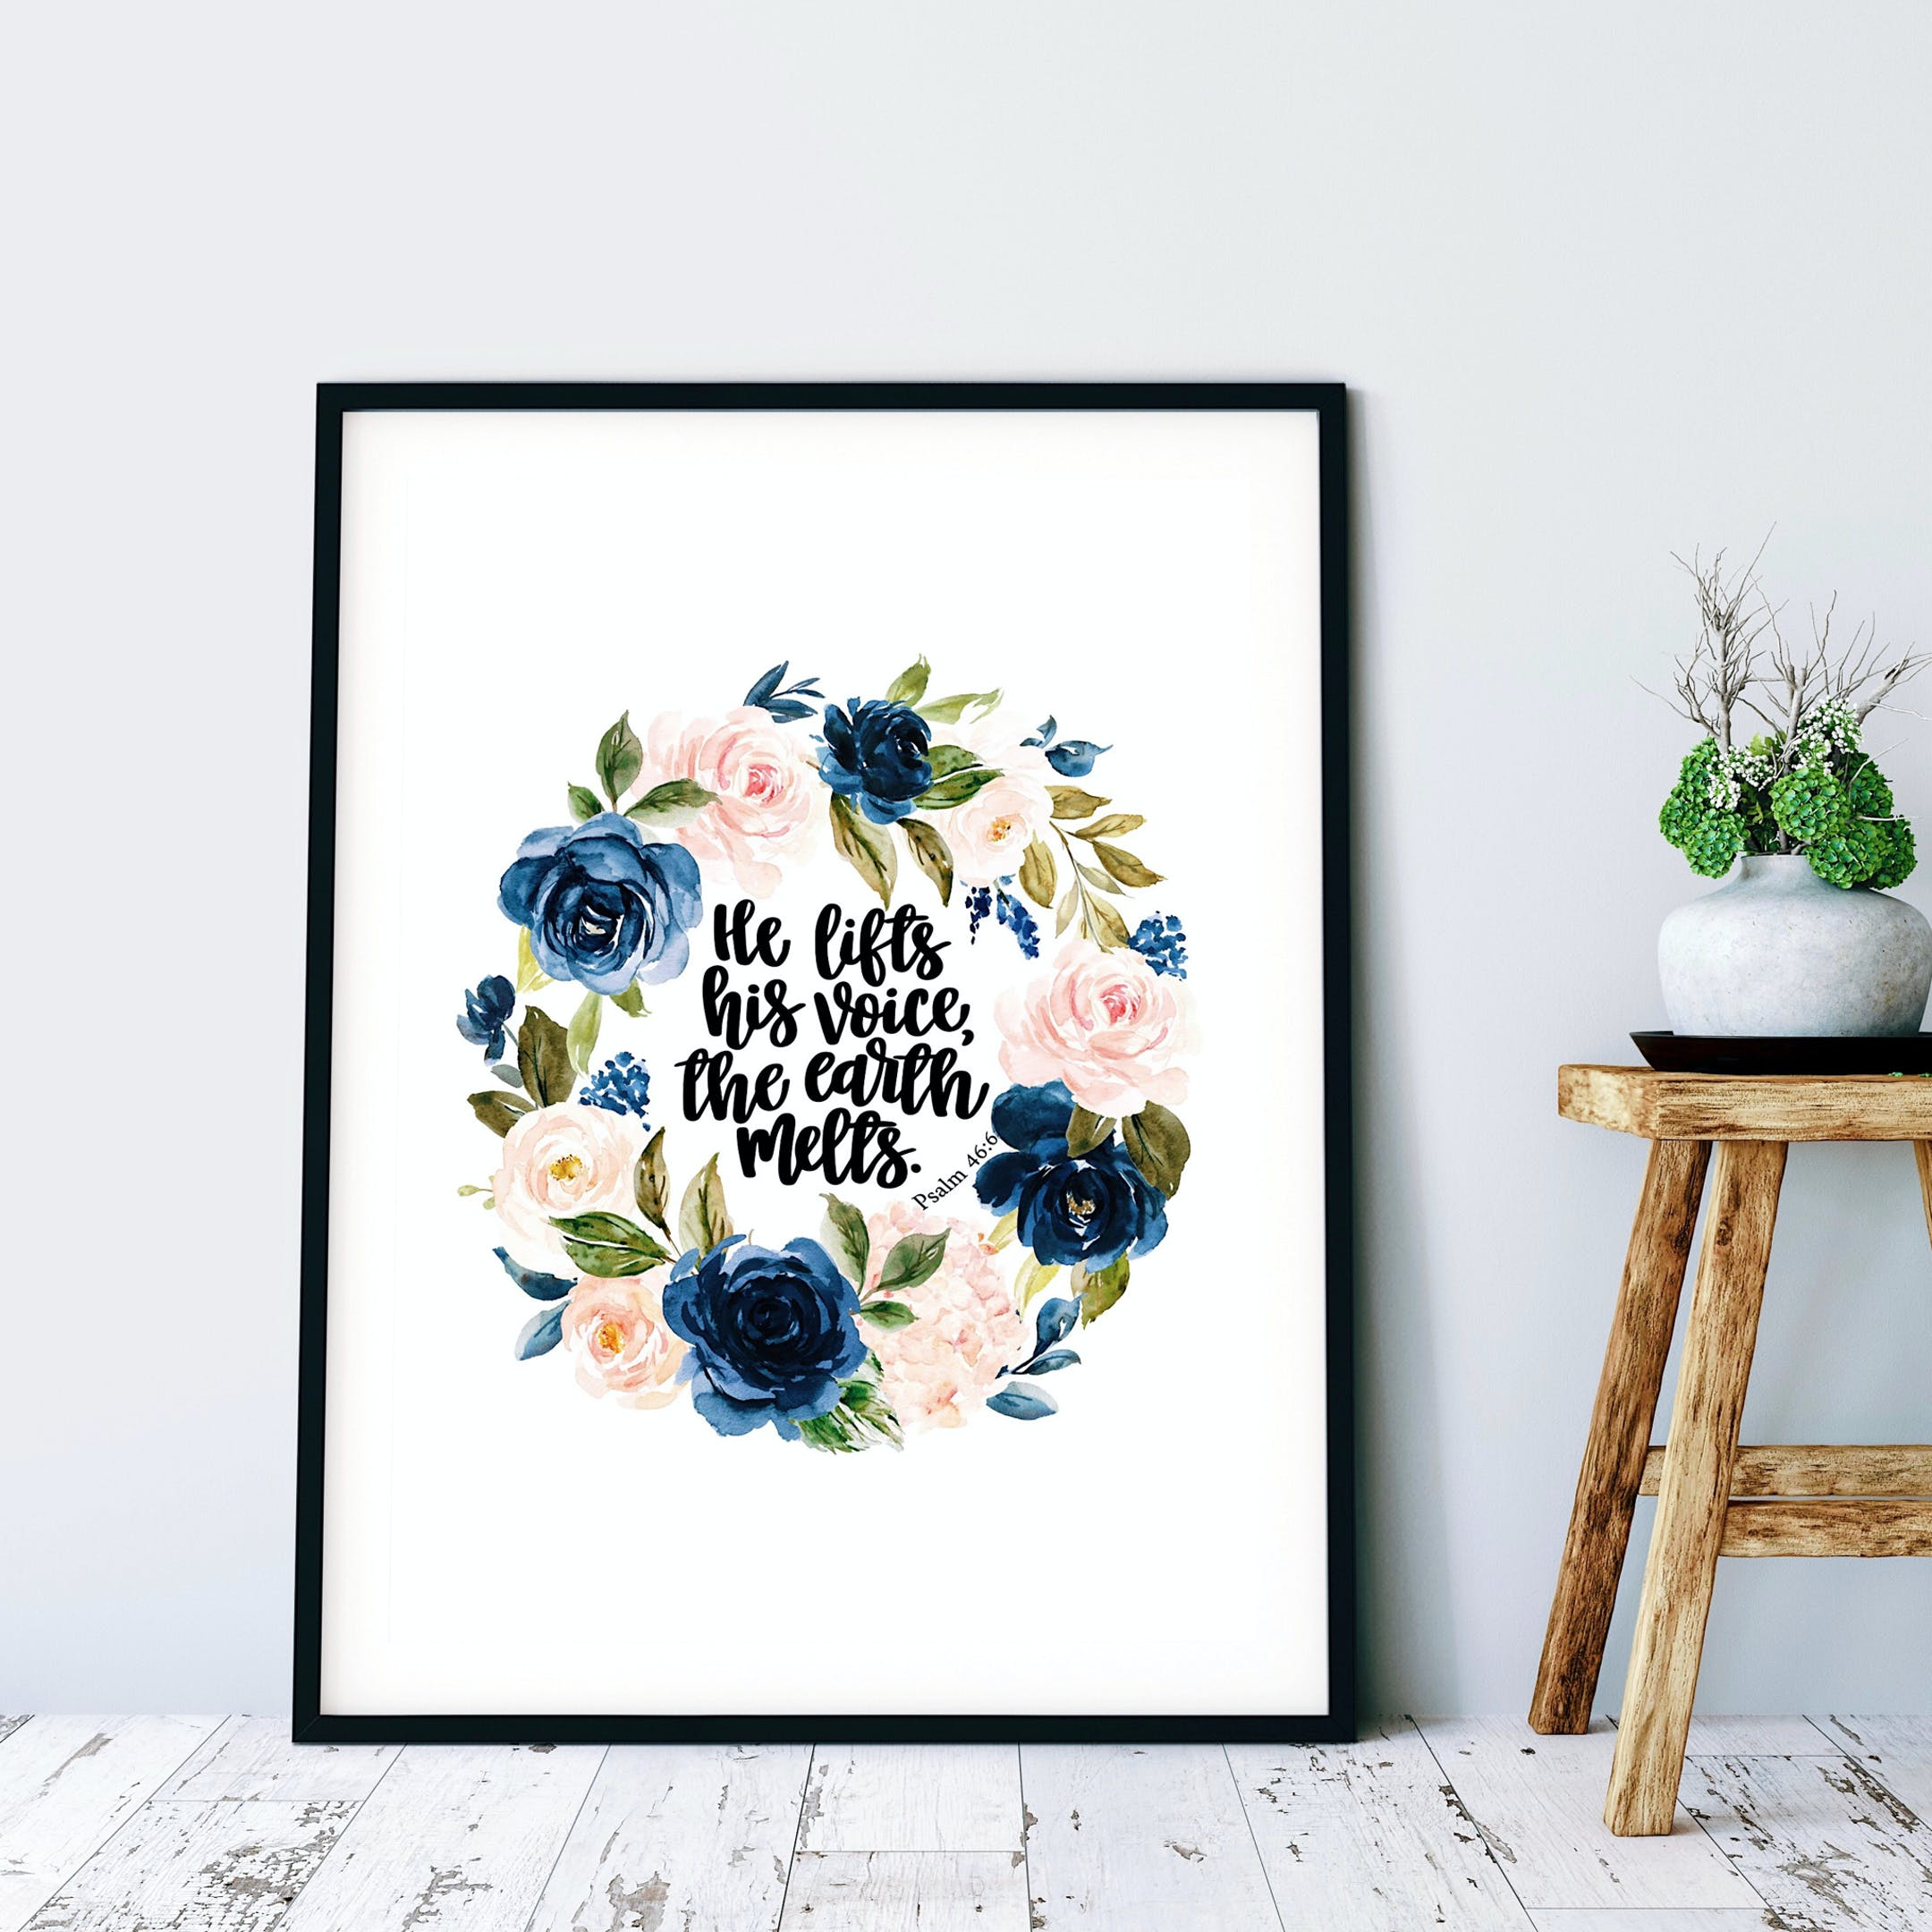 Floral Print - Psalm 46:6 - He Lifts His Voice, The Earth Melts - Izzy & Pop